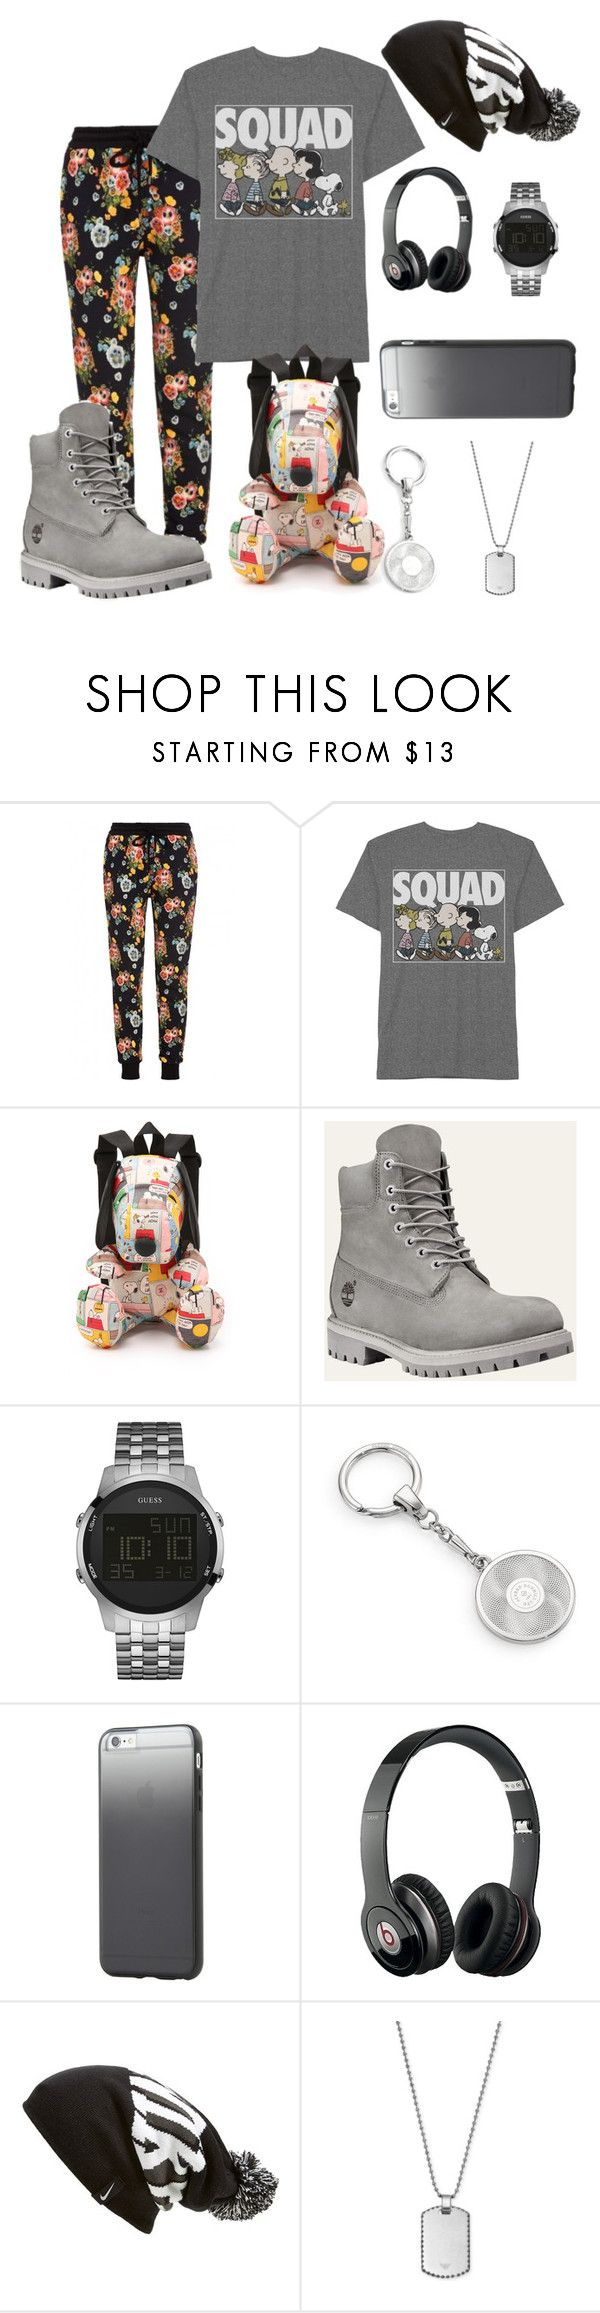 """""""For both . Snoopy's squad tho"""" by misfit4life13 ❤ liked on Polyvore featuring Markus Lupfer, LeSportsac, GUESS, Dunhill, Tavik Swimwear, Beats by Dr. Dre, NIKE, Giorgio Armani, mens and men"""